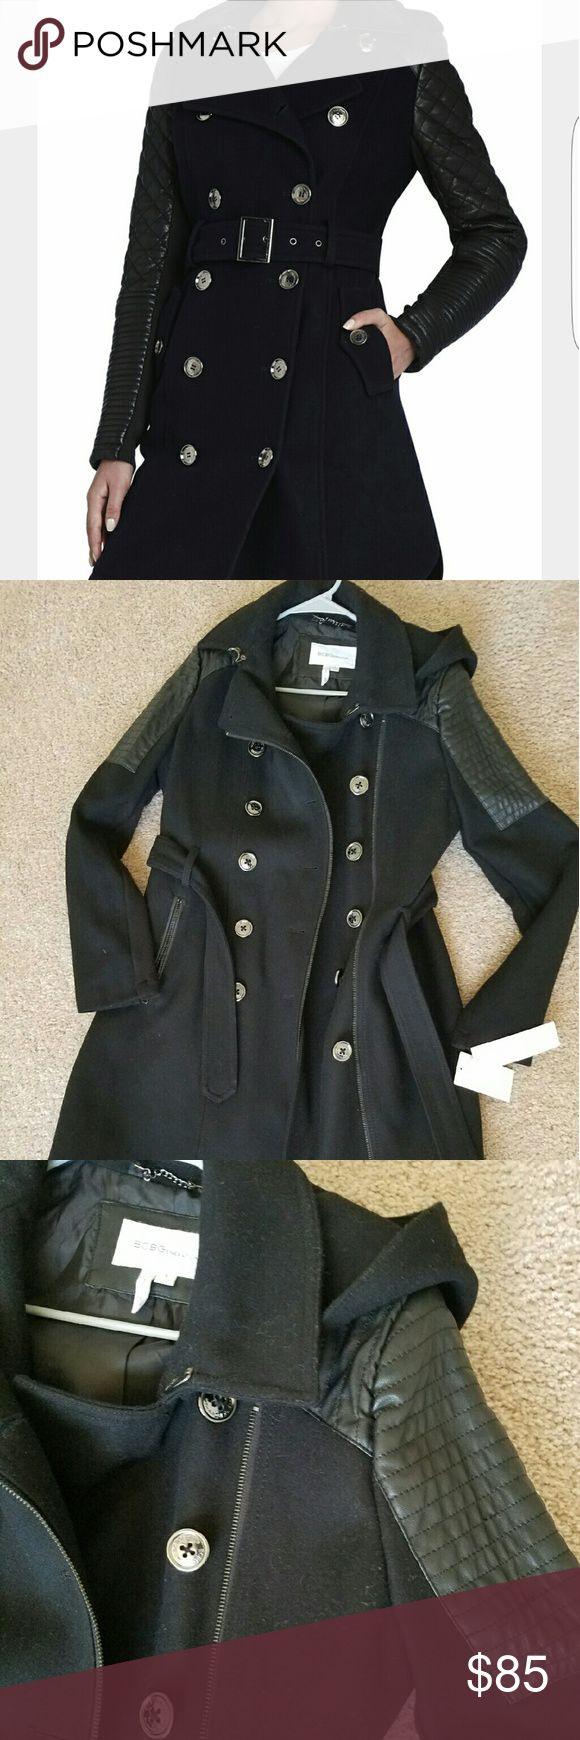 BCBGeneration Wool Trench w/quilted detail Beautiful wool Trench style coat, quilted leather detail on upper sleeves. Length is above knee. Its gorgeous!! The store only had a Large so I purchased it in hopes of getting it tailored, ended up in my closet for too long. Never worn except trying on at the store. BCBGeneration Jackets & Coats Trench Coats